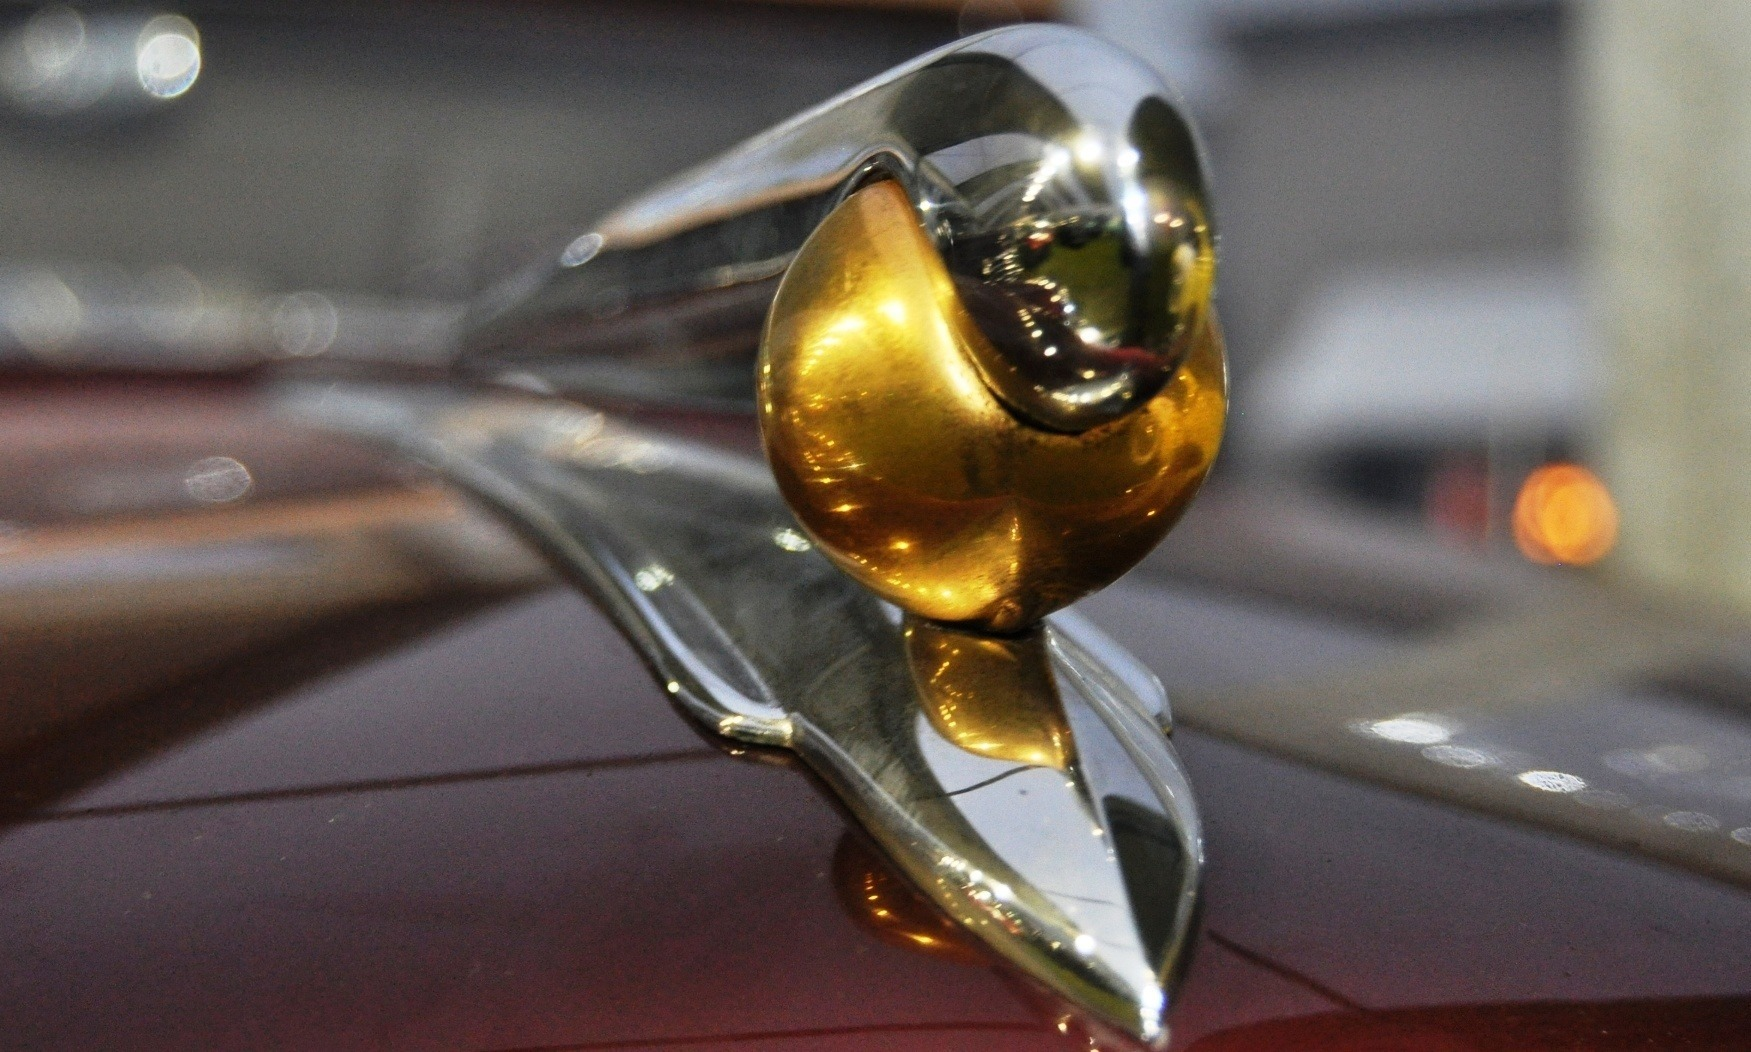 Coolest Vintage Hood Ornaments -- RM Auctions Amelia Island 2014 -- Pierce-Arrow, Cadillac, Stutz, Chrysler, Ford, Aston-Martin, Bentley and More 29